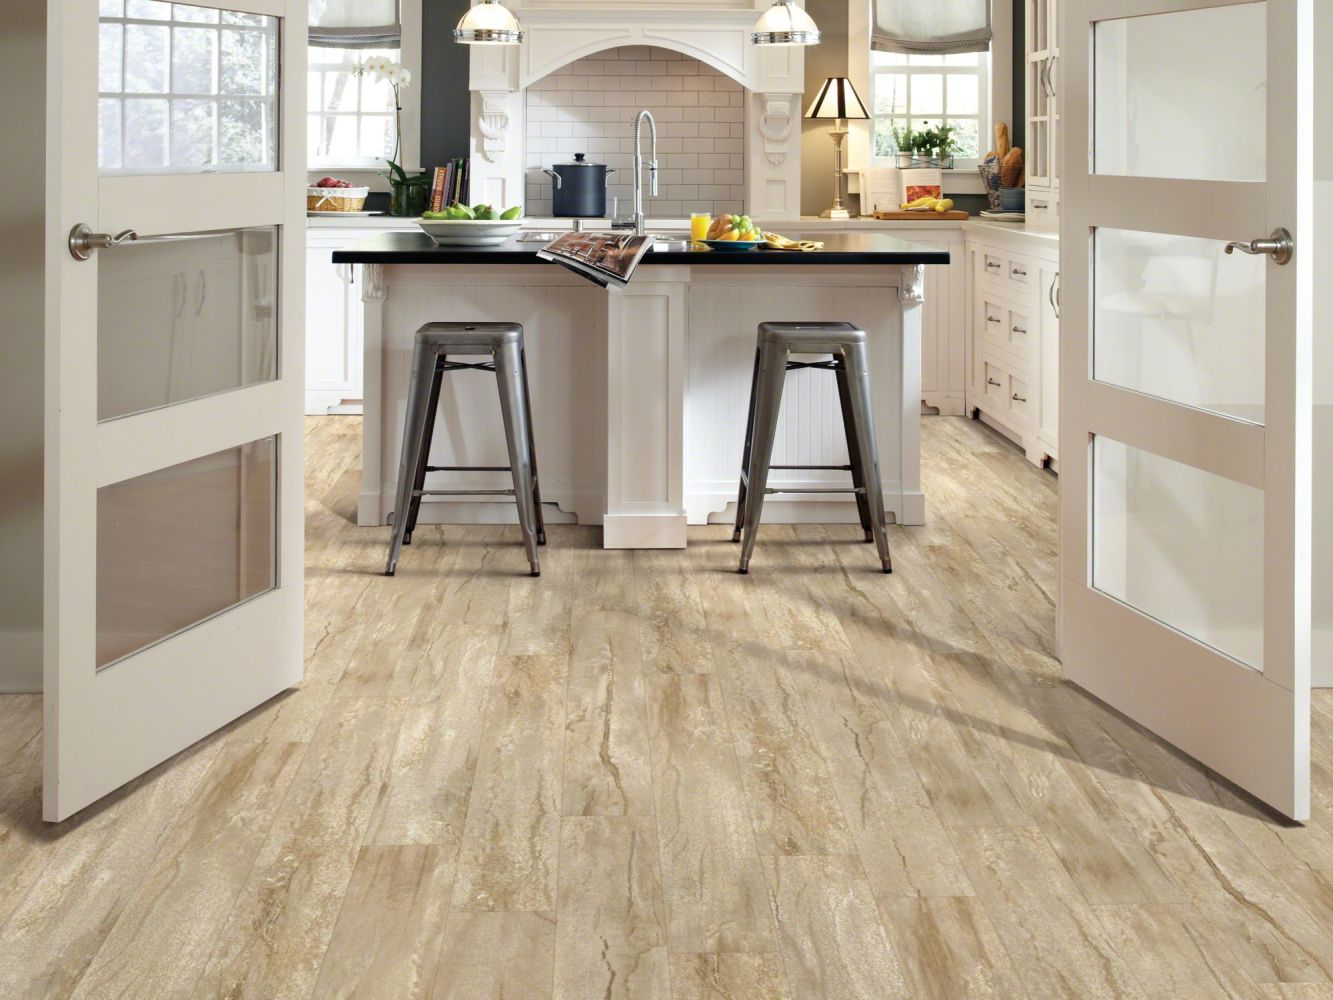 Shaw Floors Resilient Residential Classico Plank Latte 00209_0426V